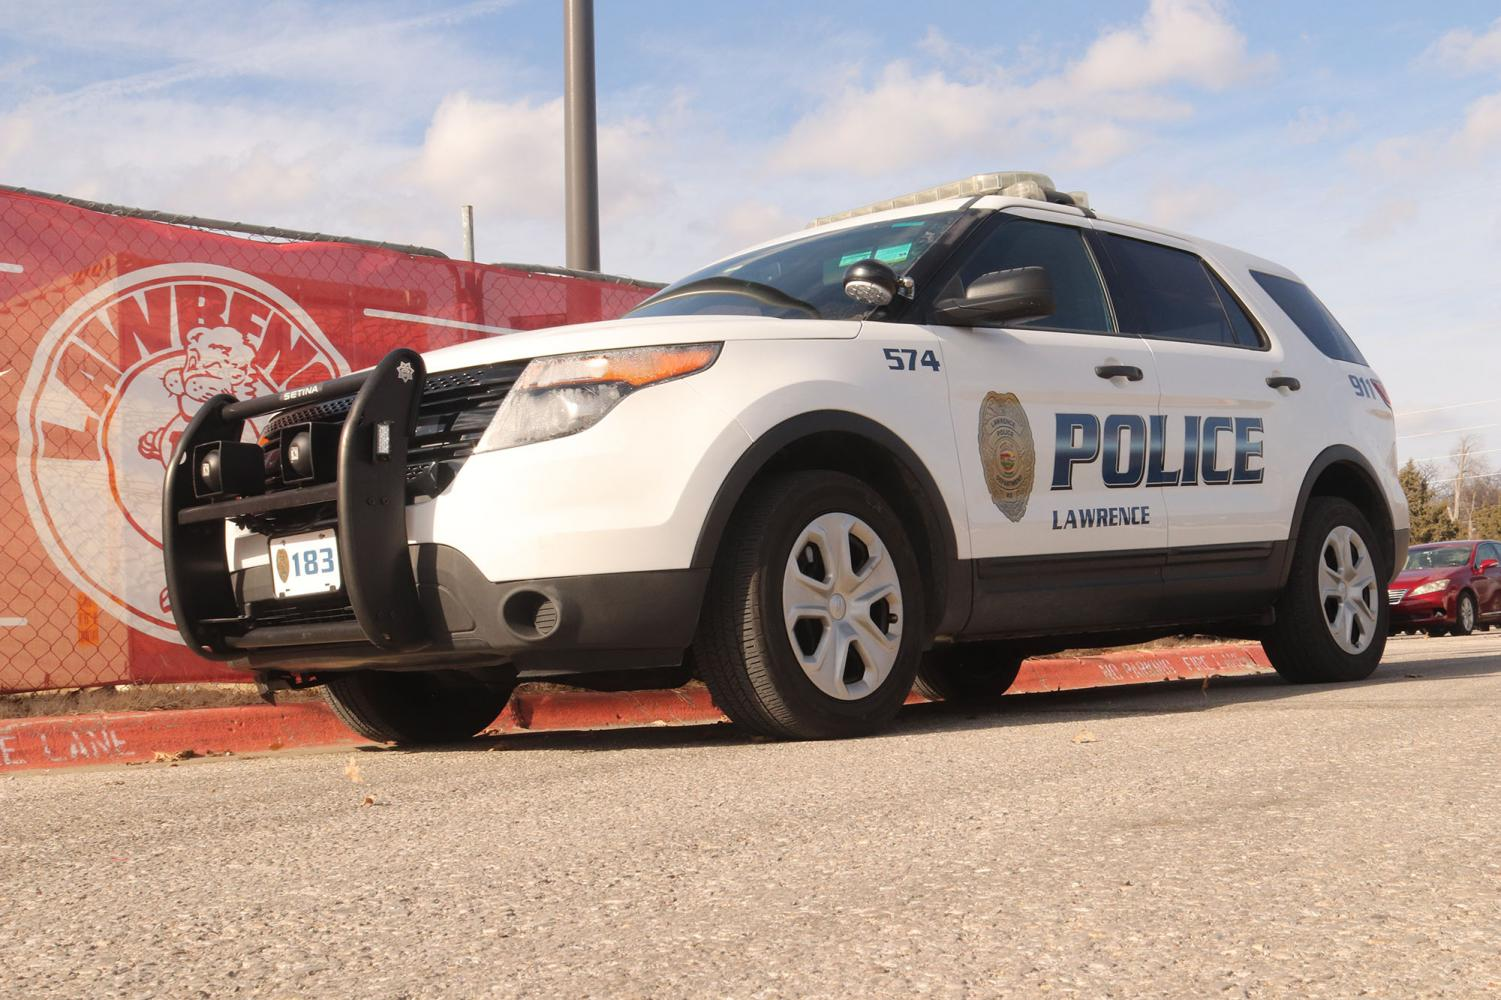 A police car is parked by Lawrence High School on Thursday afternoon, a day after a firearm was confiscated from a student.